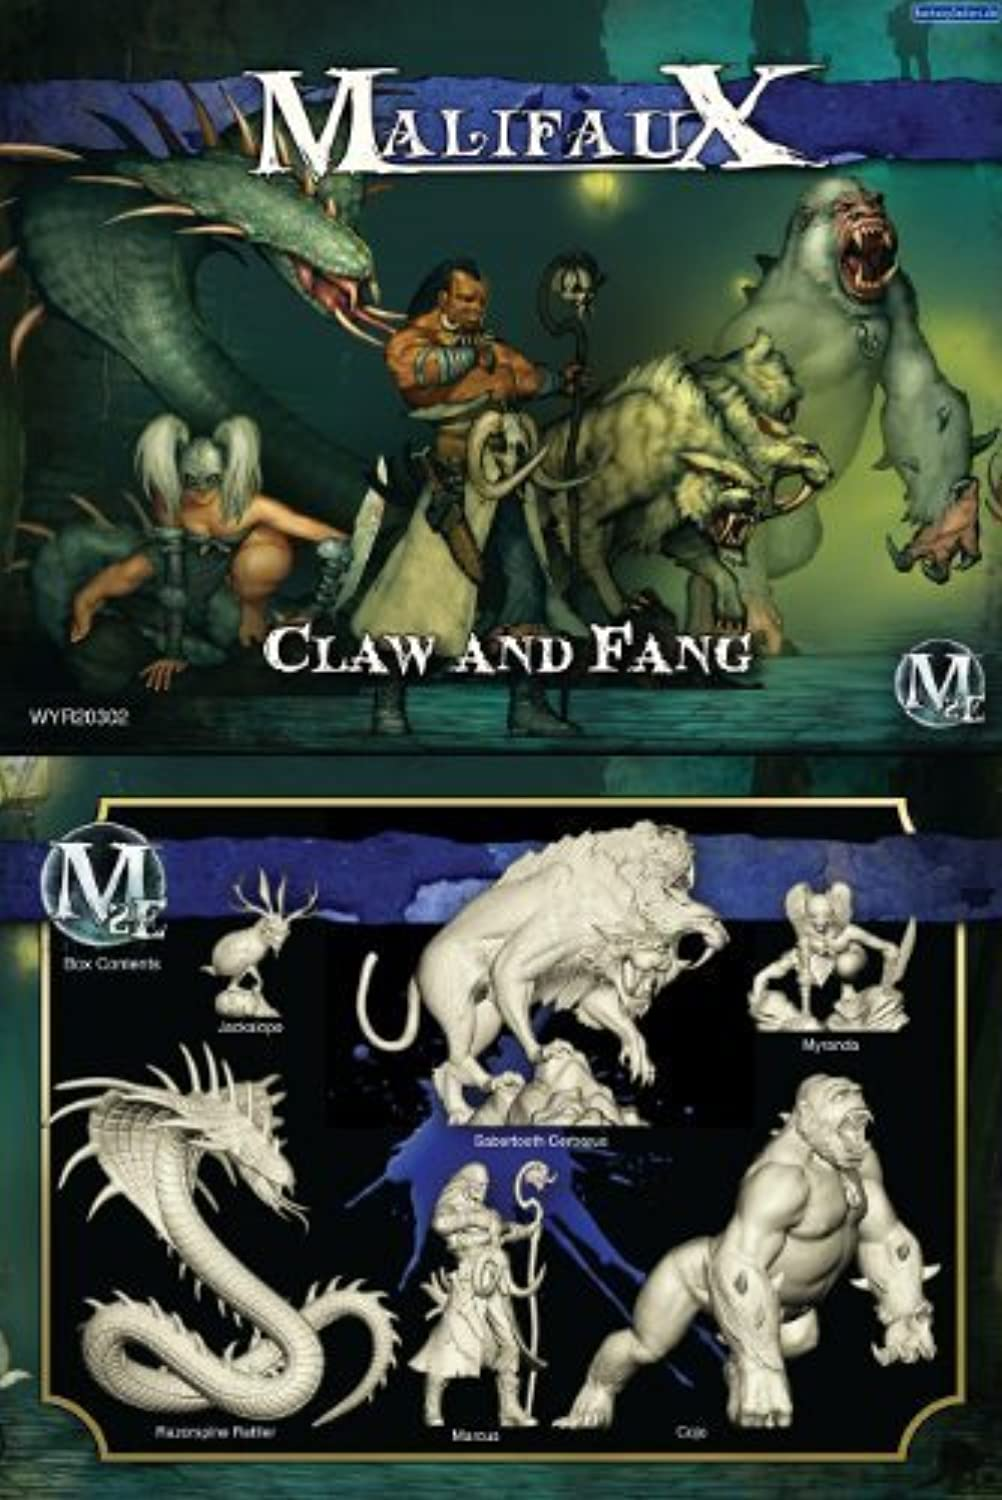 alta calidad y envío rápido Malifaux  Arcanists Arcanists Arcanists Claw and Fang by Wyrd Miniatures  hermoso